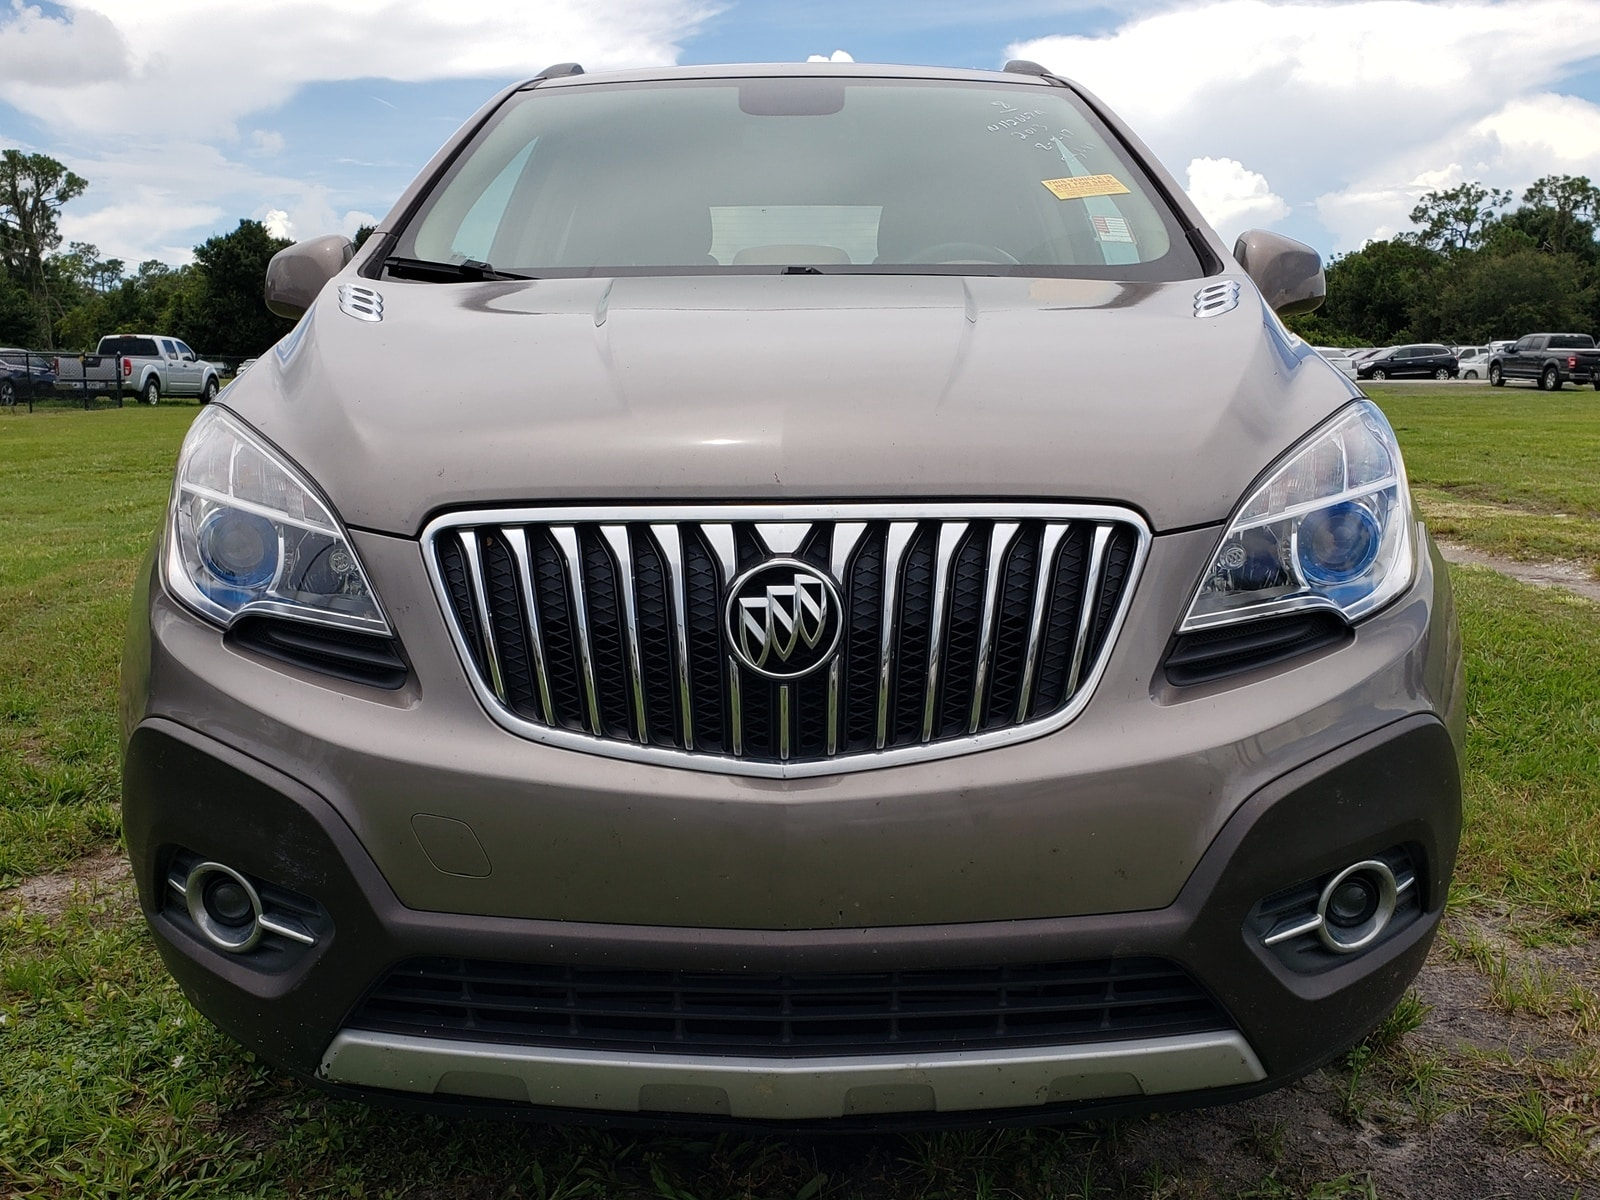 Used 2013 Buick Encore Leather For Sale Wauchula, FL | VIN